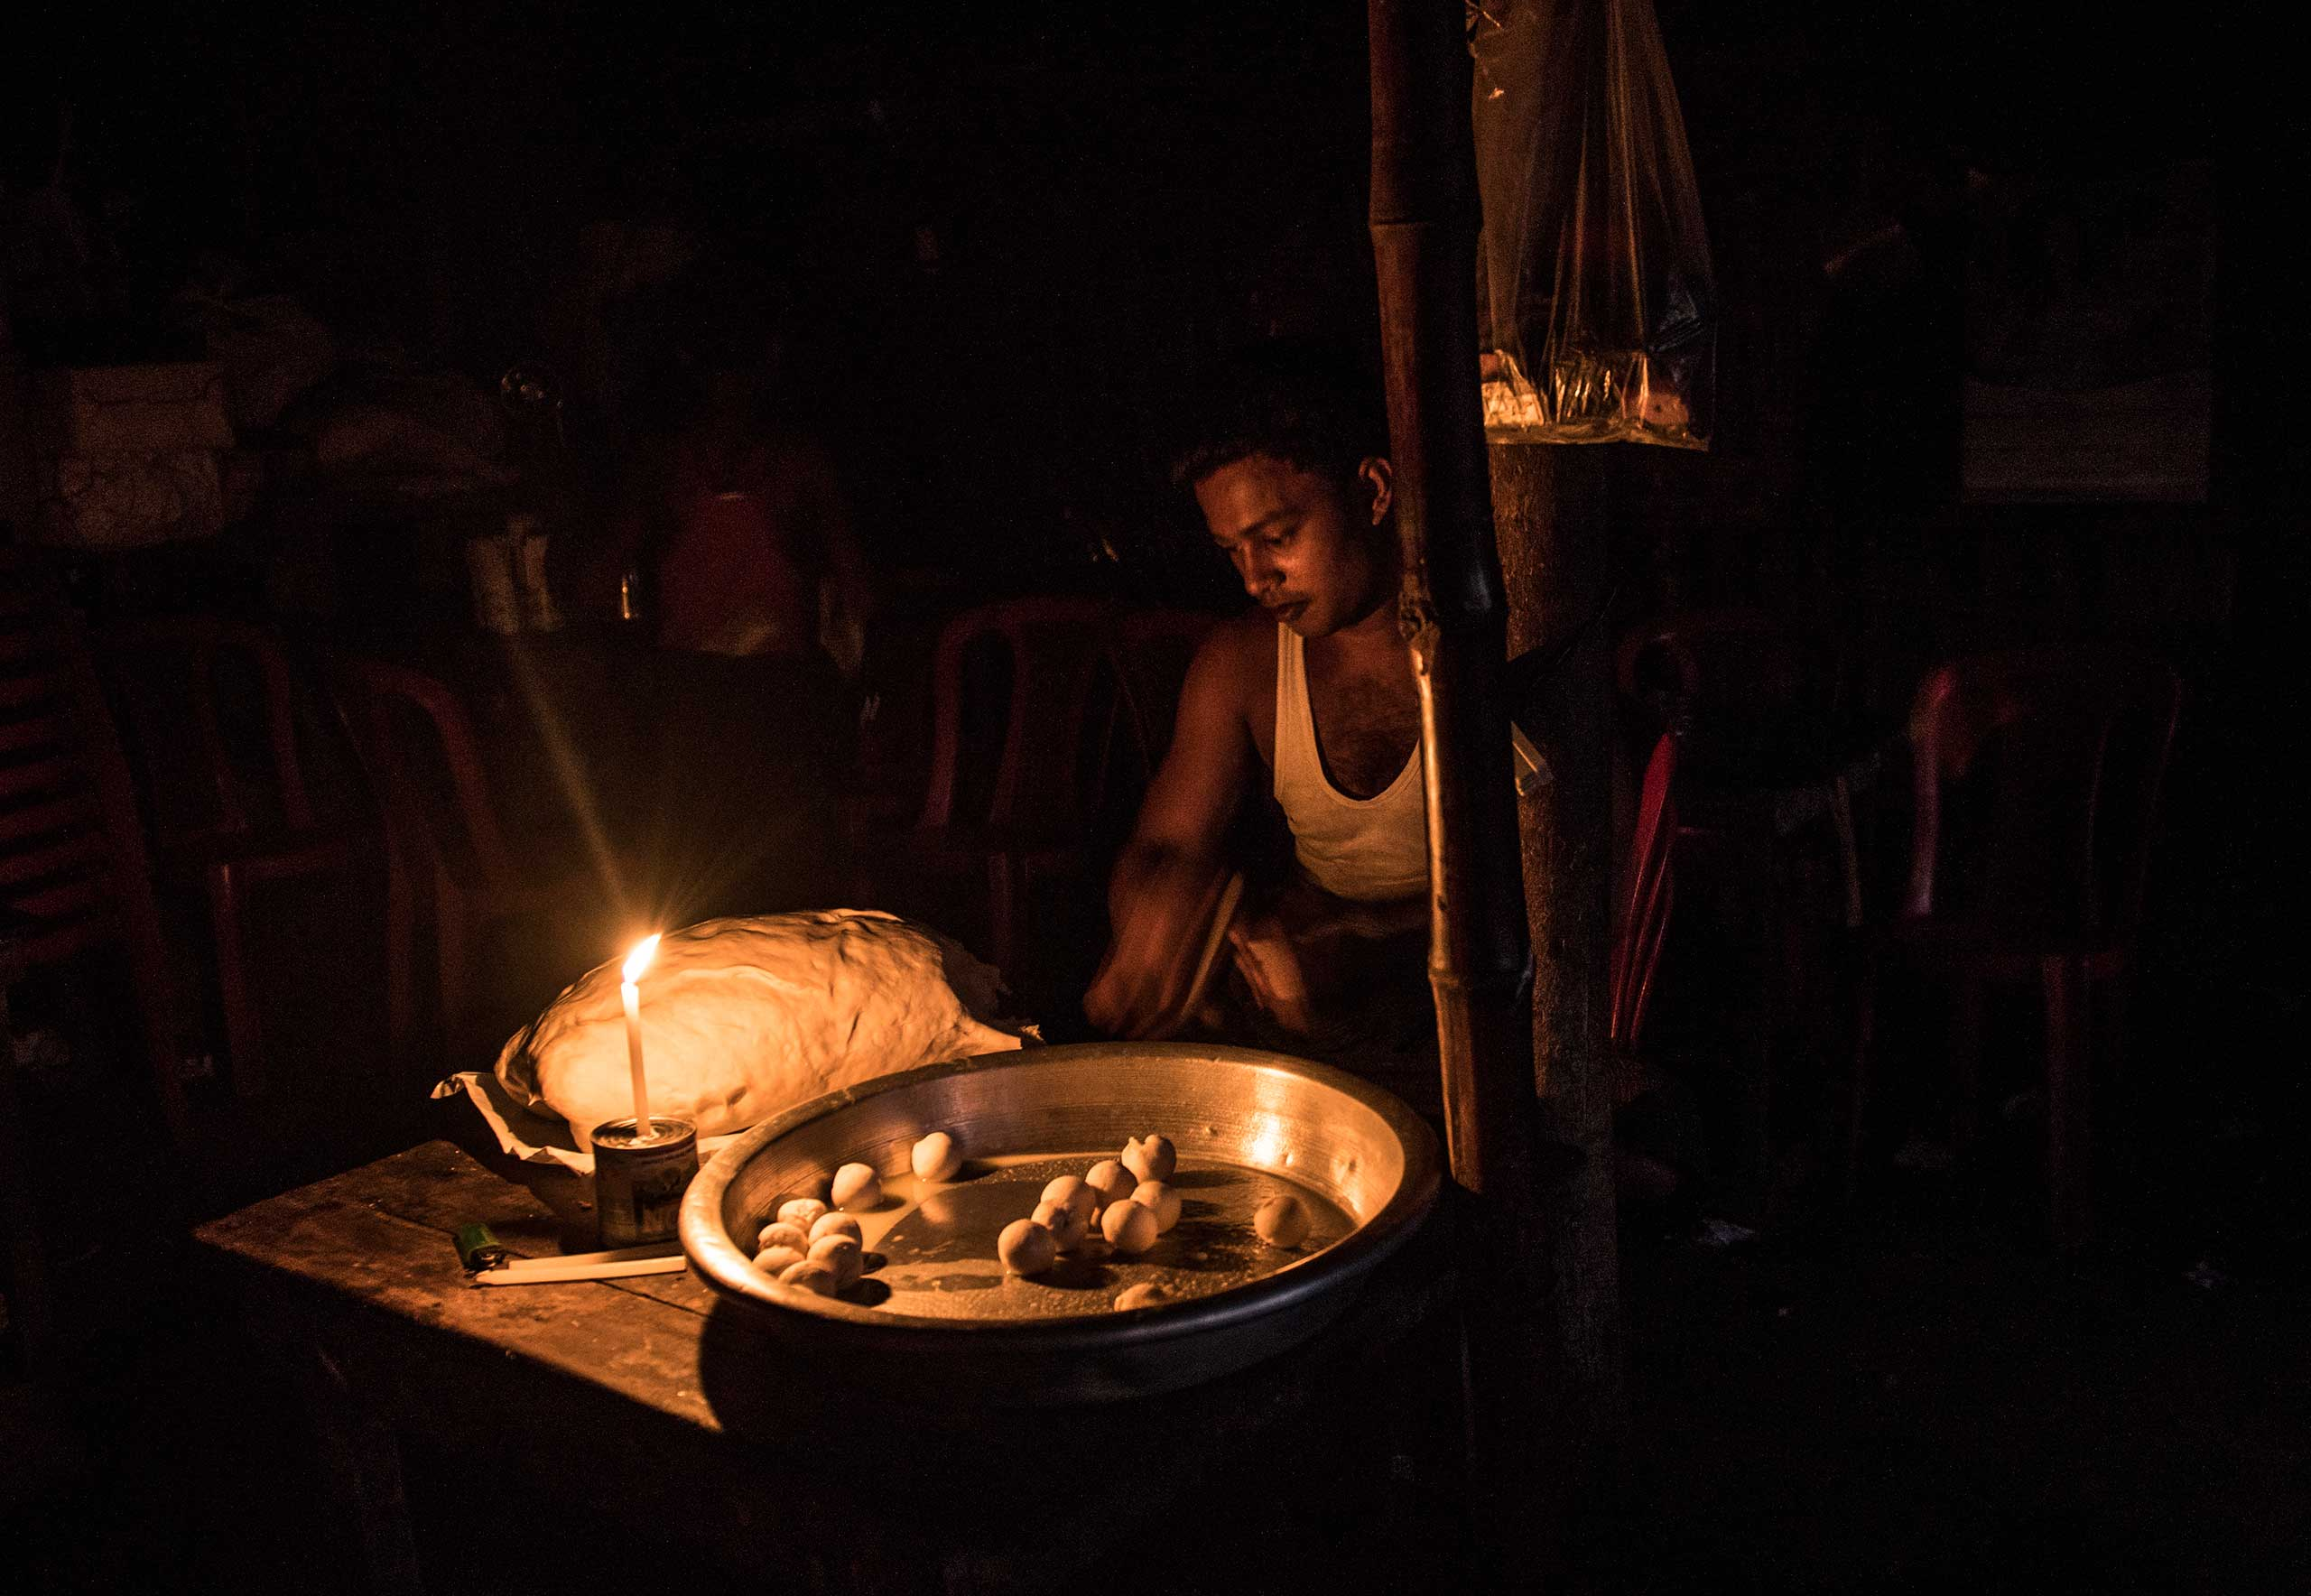 A Rohingya man, Burmese Muslims, sells food at a stall at night in the Thay Chaung camp for the Internally Displaced outside of Sittwe, which houses nearly 3000 people, Nov. 23, 2015.